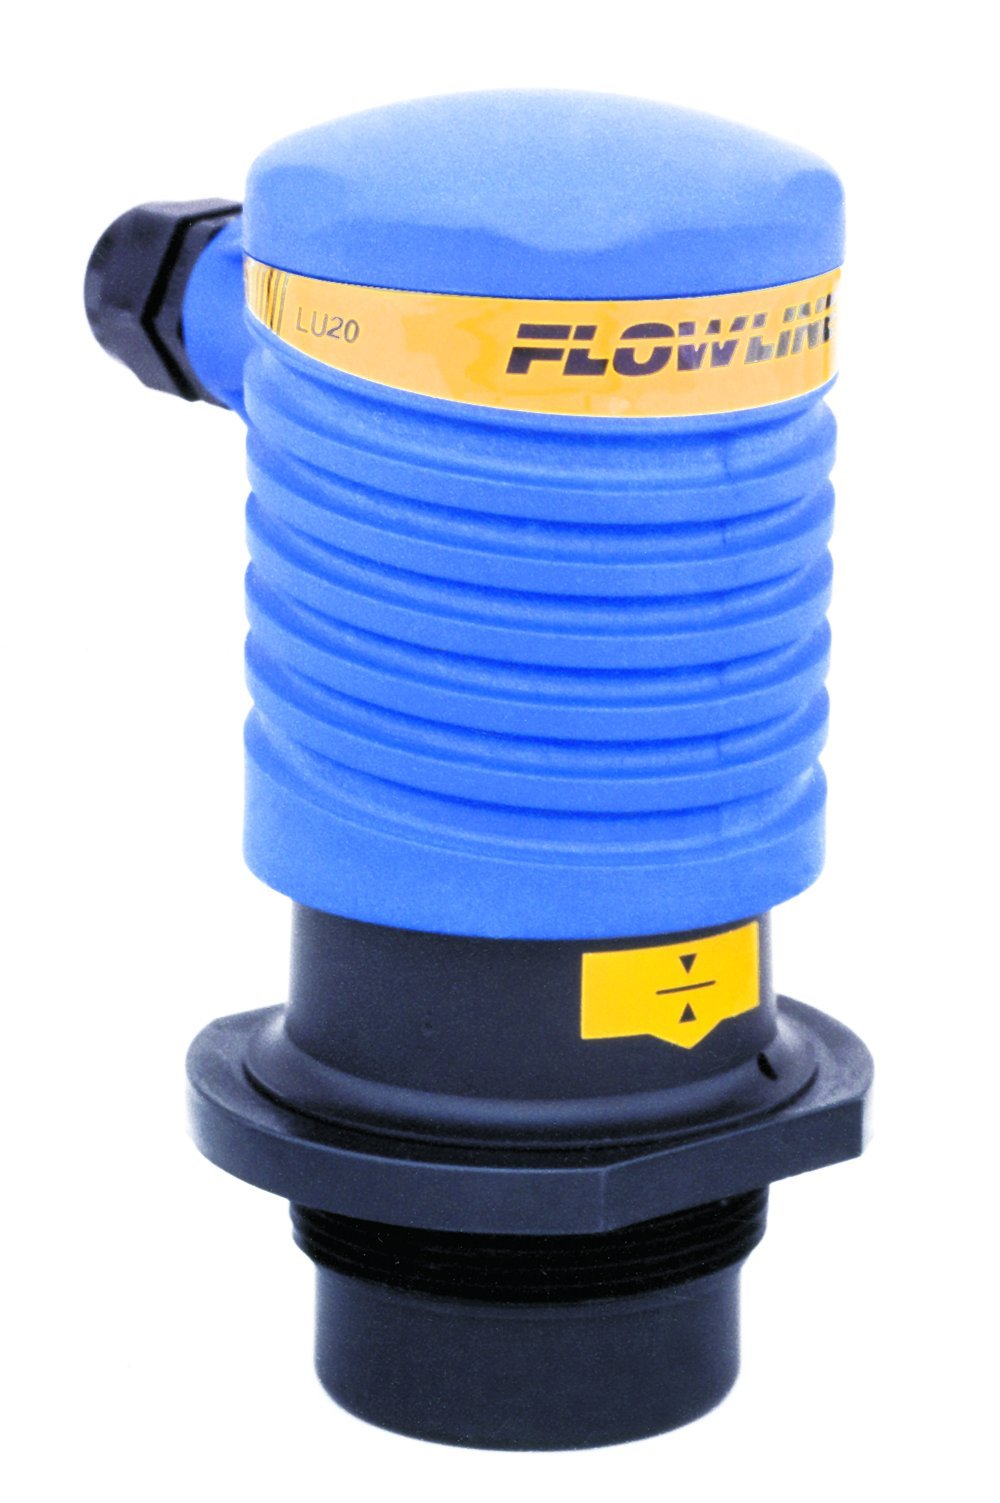 Flowline LU20-5001-IS EchoTouch IS Ultrasonic Level Transmitter with 18' Cable, 2'' NPT